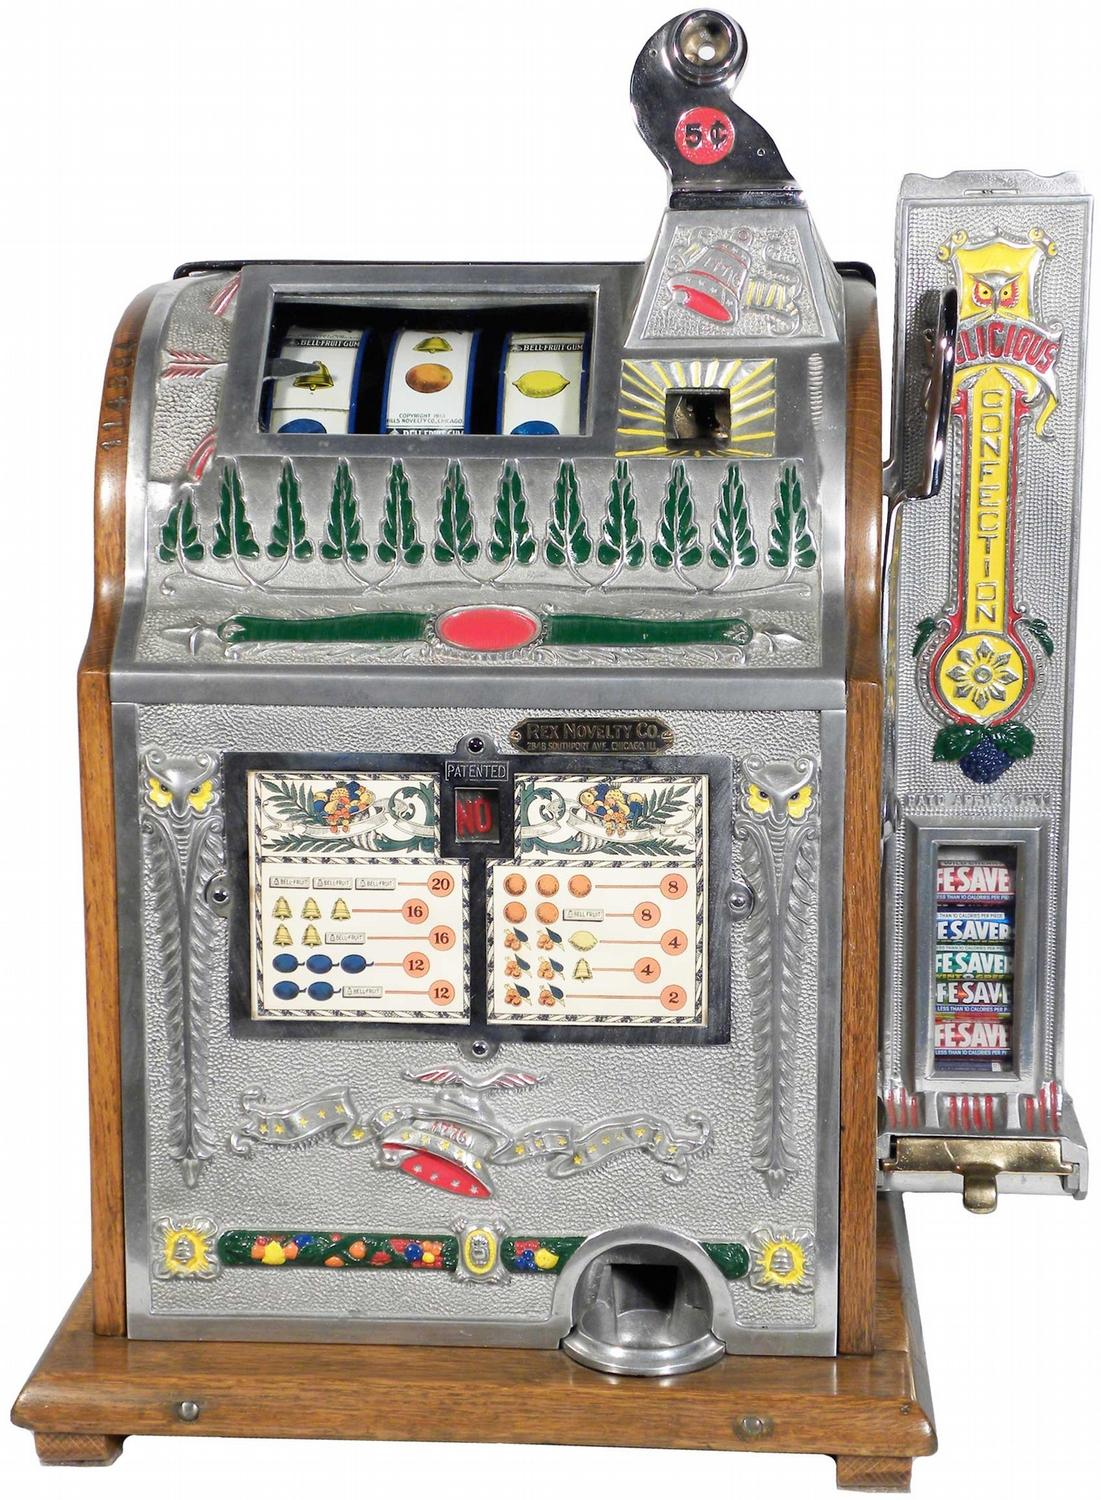 Slot machines for sale in australia bet betting canada gambling sports sports